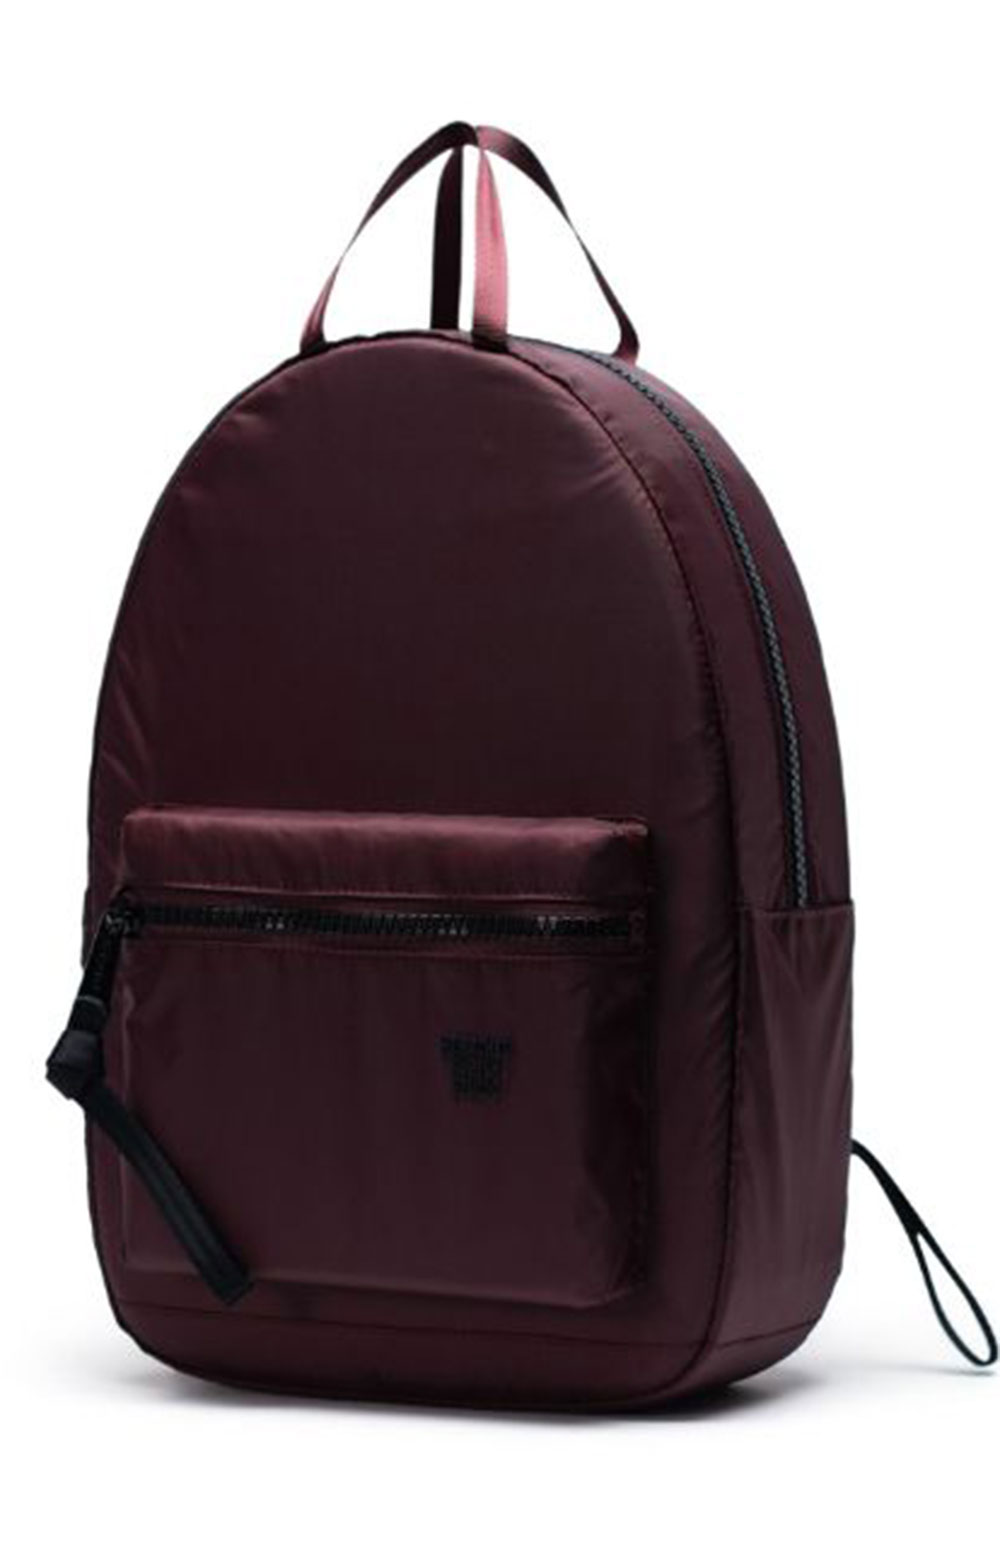 HS6 Backpack Studio - Plum/Black 3